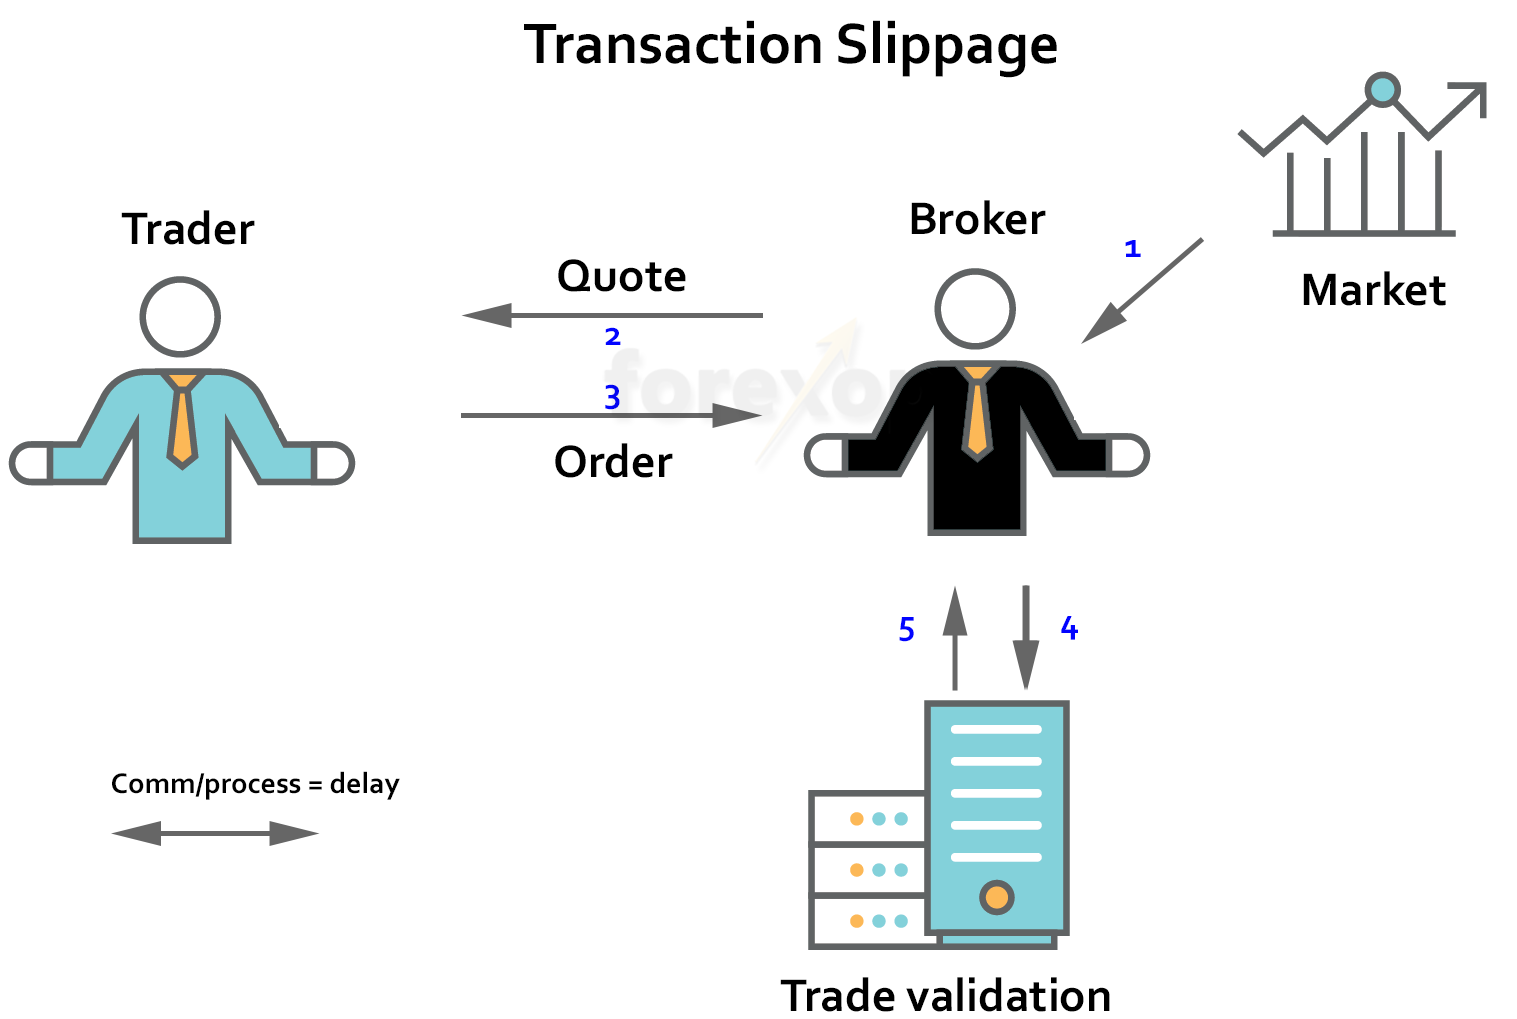 Figure 1: The problem of transaction slippage